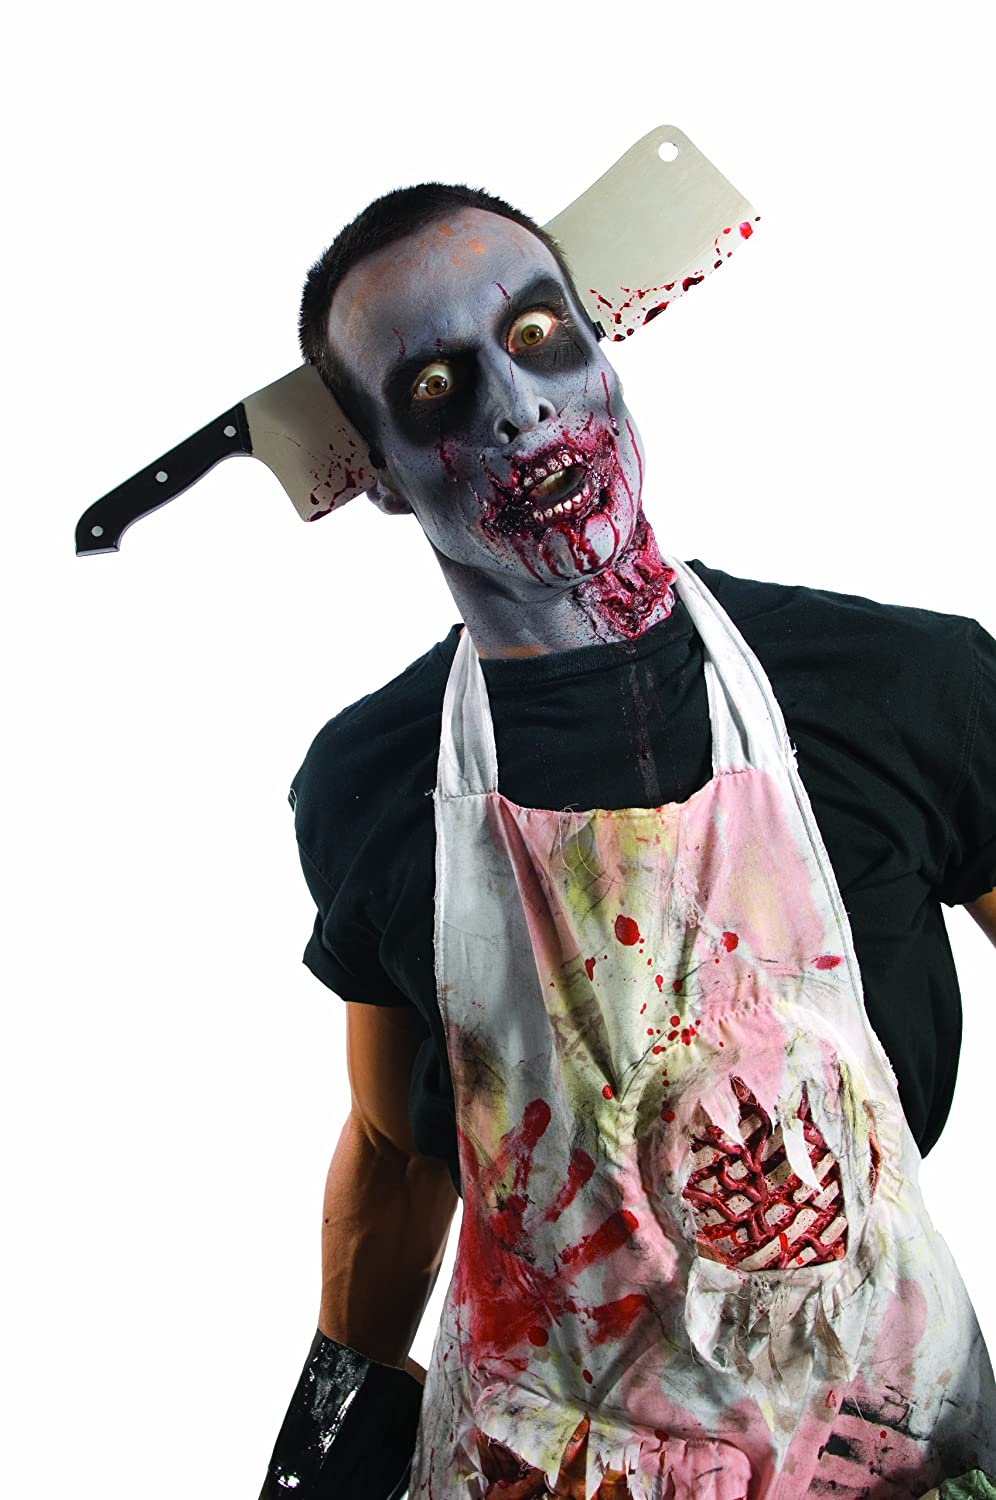 Amazon.com Rubieu0027s Costume Zombie Shop Cleaver Through Head Silver/Red/Black One Size Clothing  sc 1 st  Amazon.com & Amazon.com: Rubieu0027s Costume Zombie Shop Cleaver Through Head Silver ...